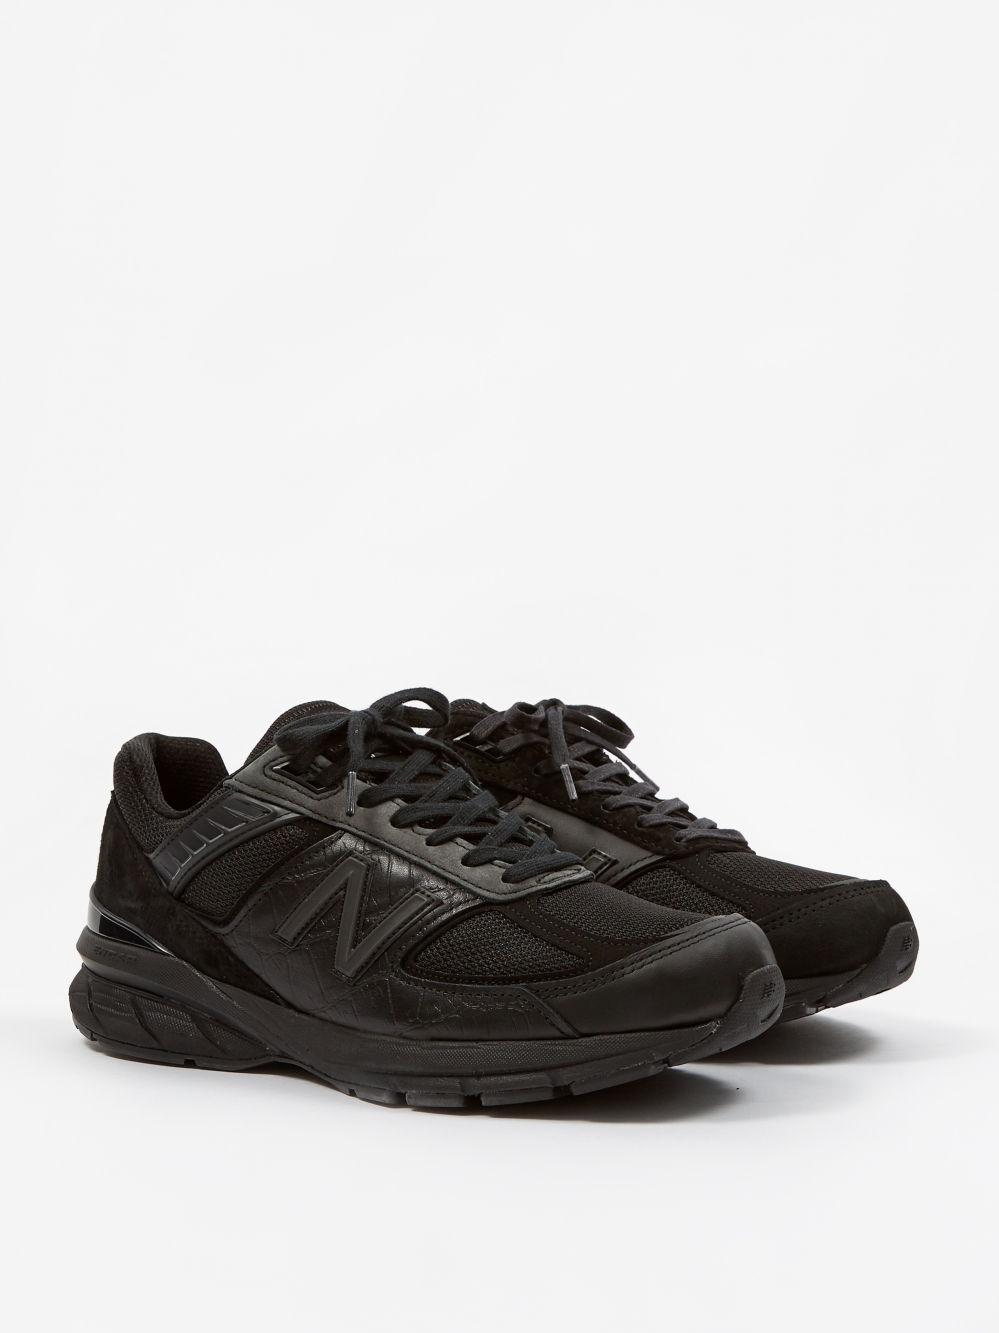 acheter en ligne a0767 ebe69 New Balance x Engineered Garments M990EGB5 - Black